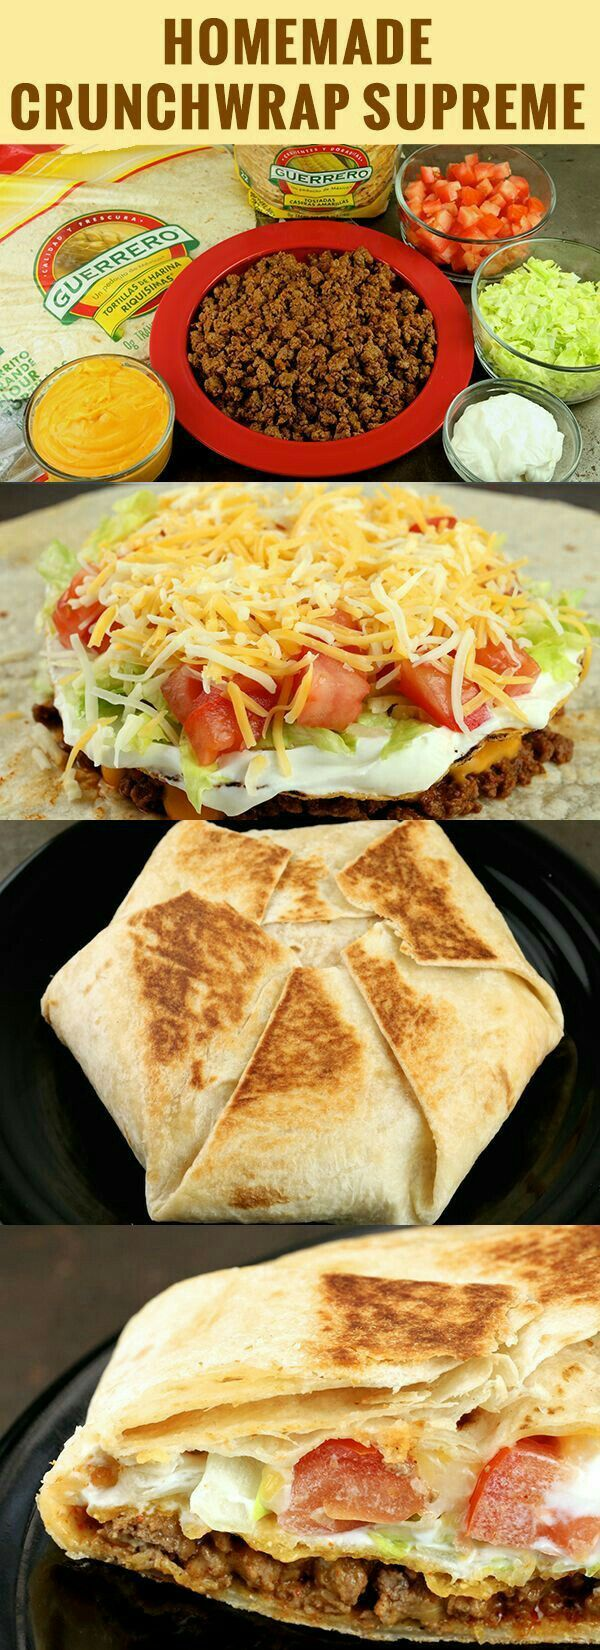 Homemade Crunch Wrap Supreme Recipe Easy To Substitute Ingredients Make This Gluten And Or Dairy Free